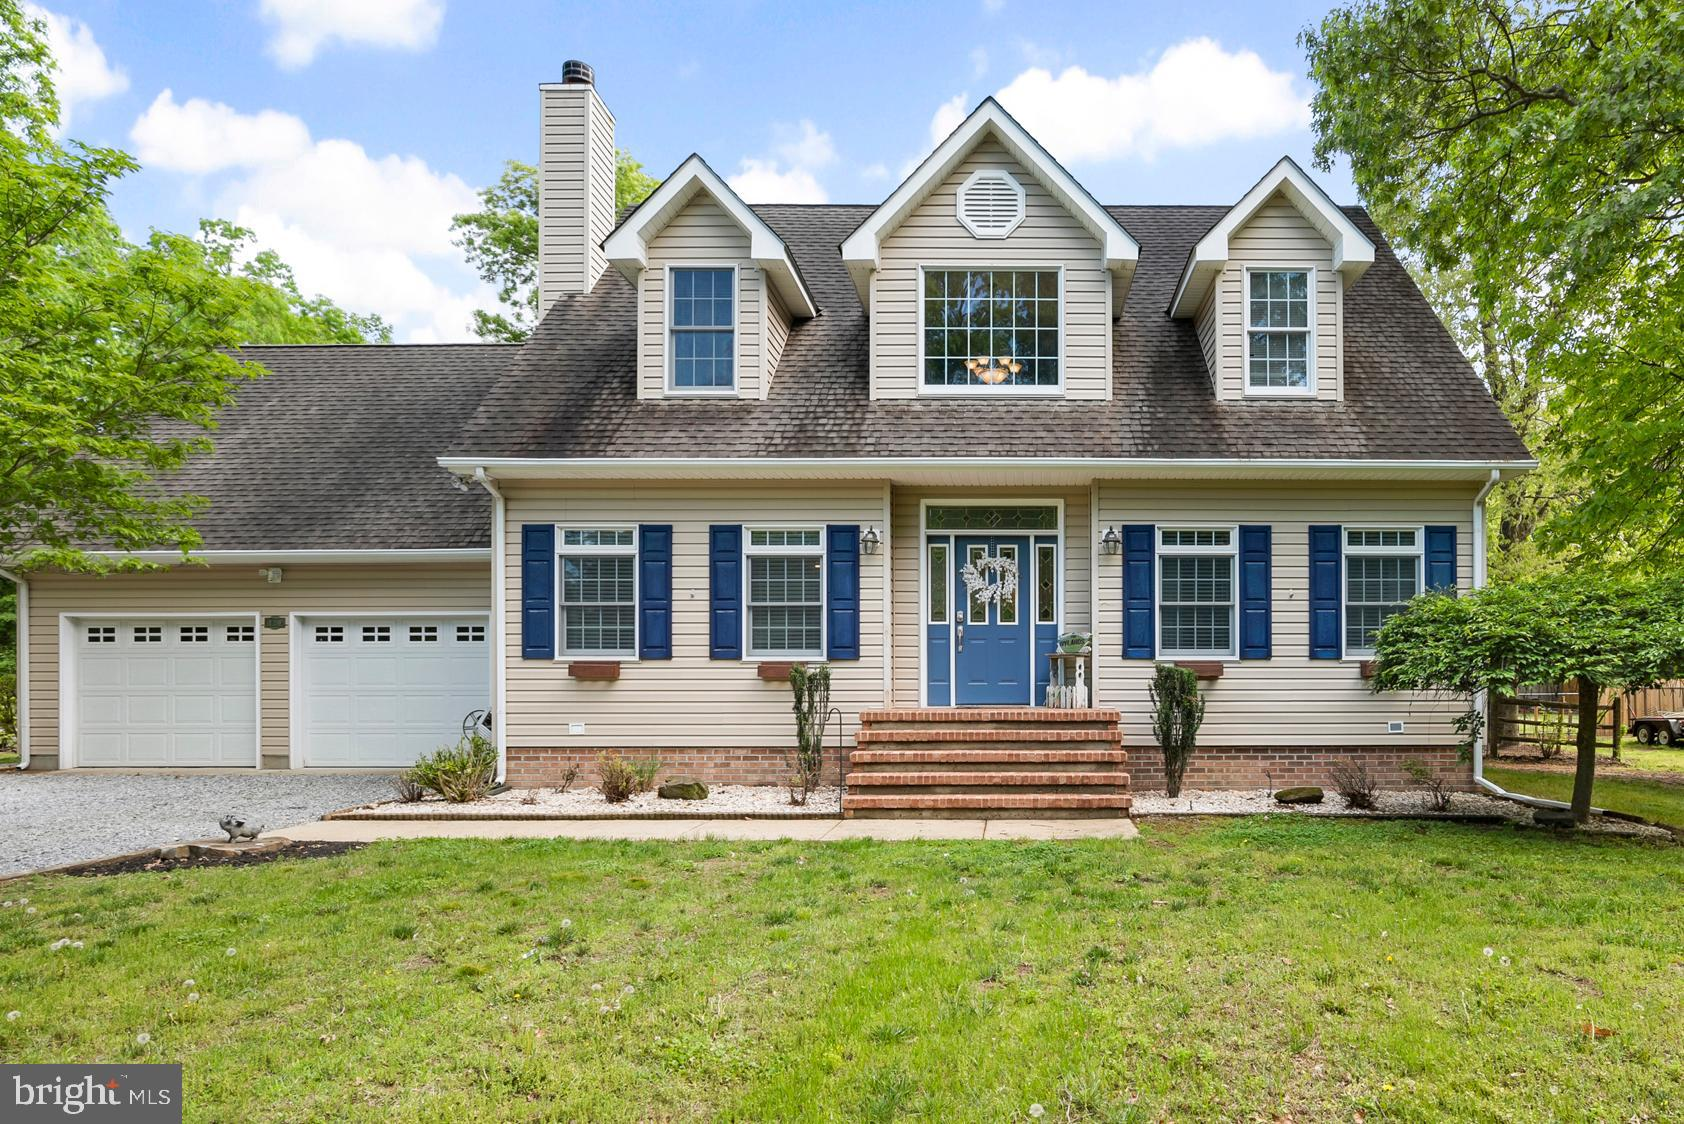 Located in Northern Queen Anne's County with quick access to 301 this home has been recently updated